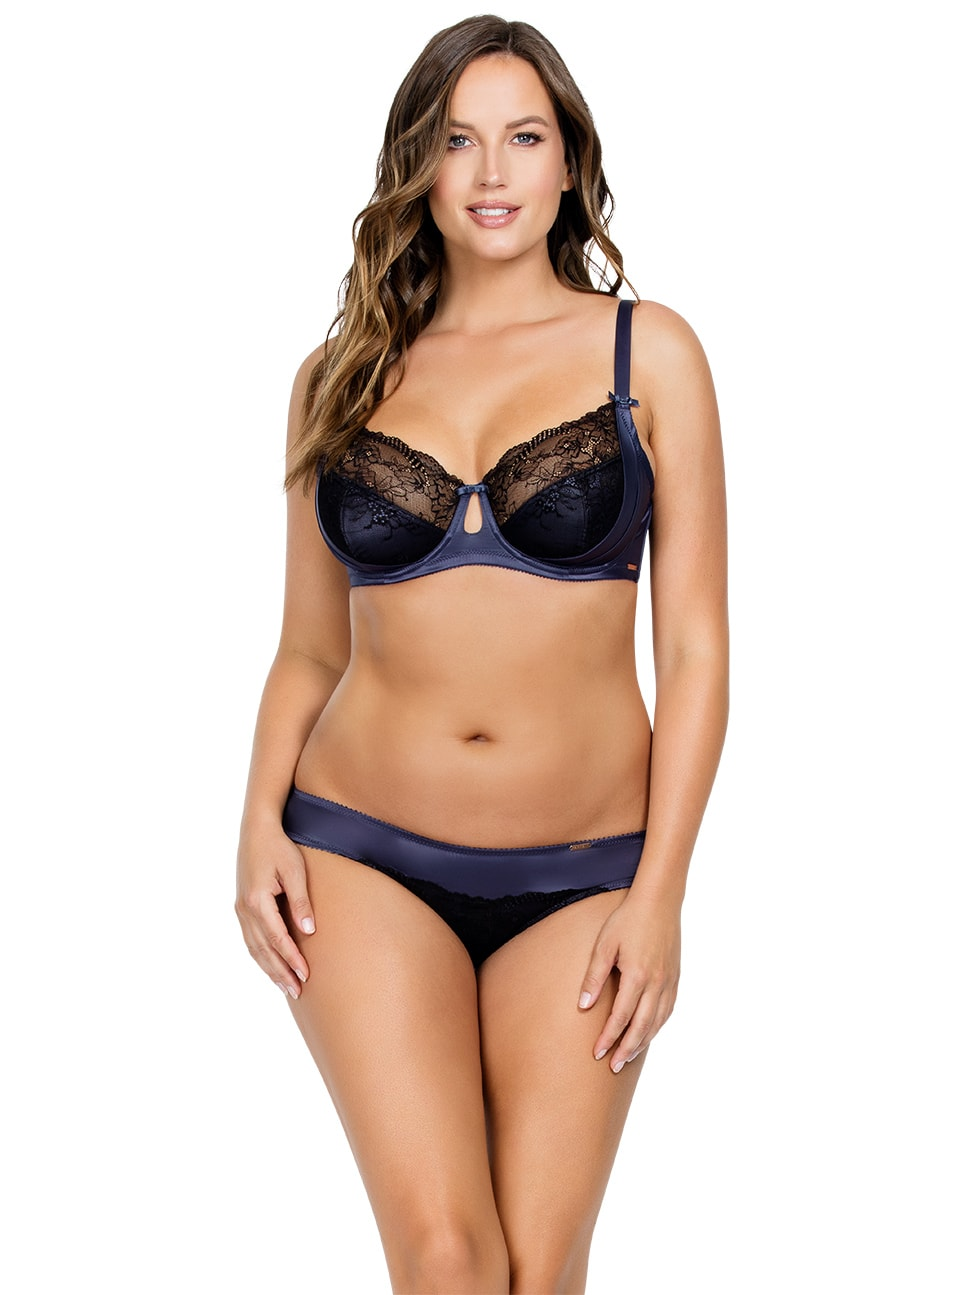 PARFAIT Mariela UnlinedWireBraP5582 BikiniP5583 Nightshadow Front copy - Mariela Unlined Wire Bra - Nightshadow - P5582